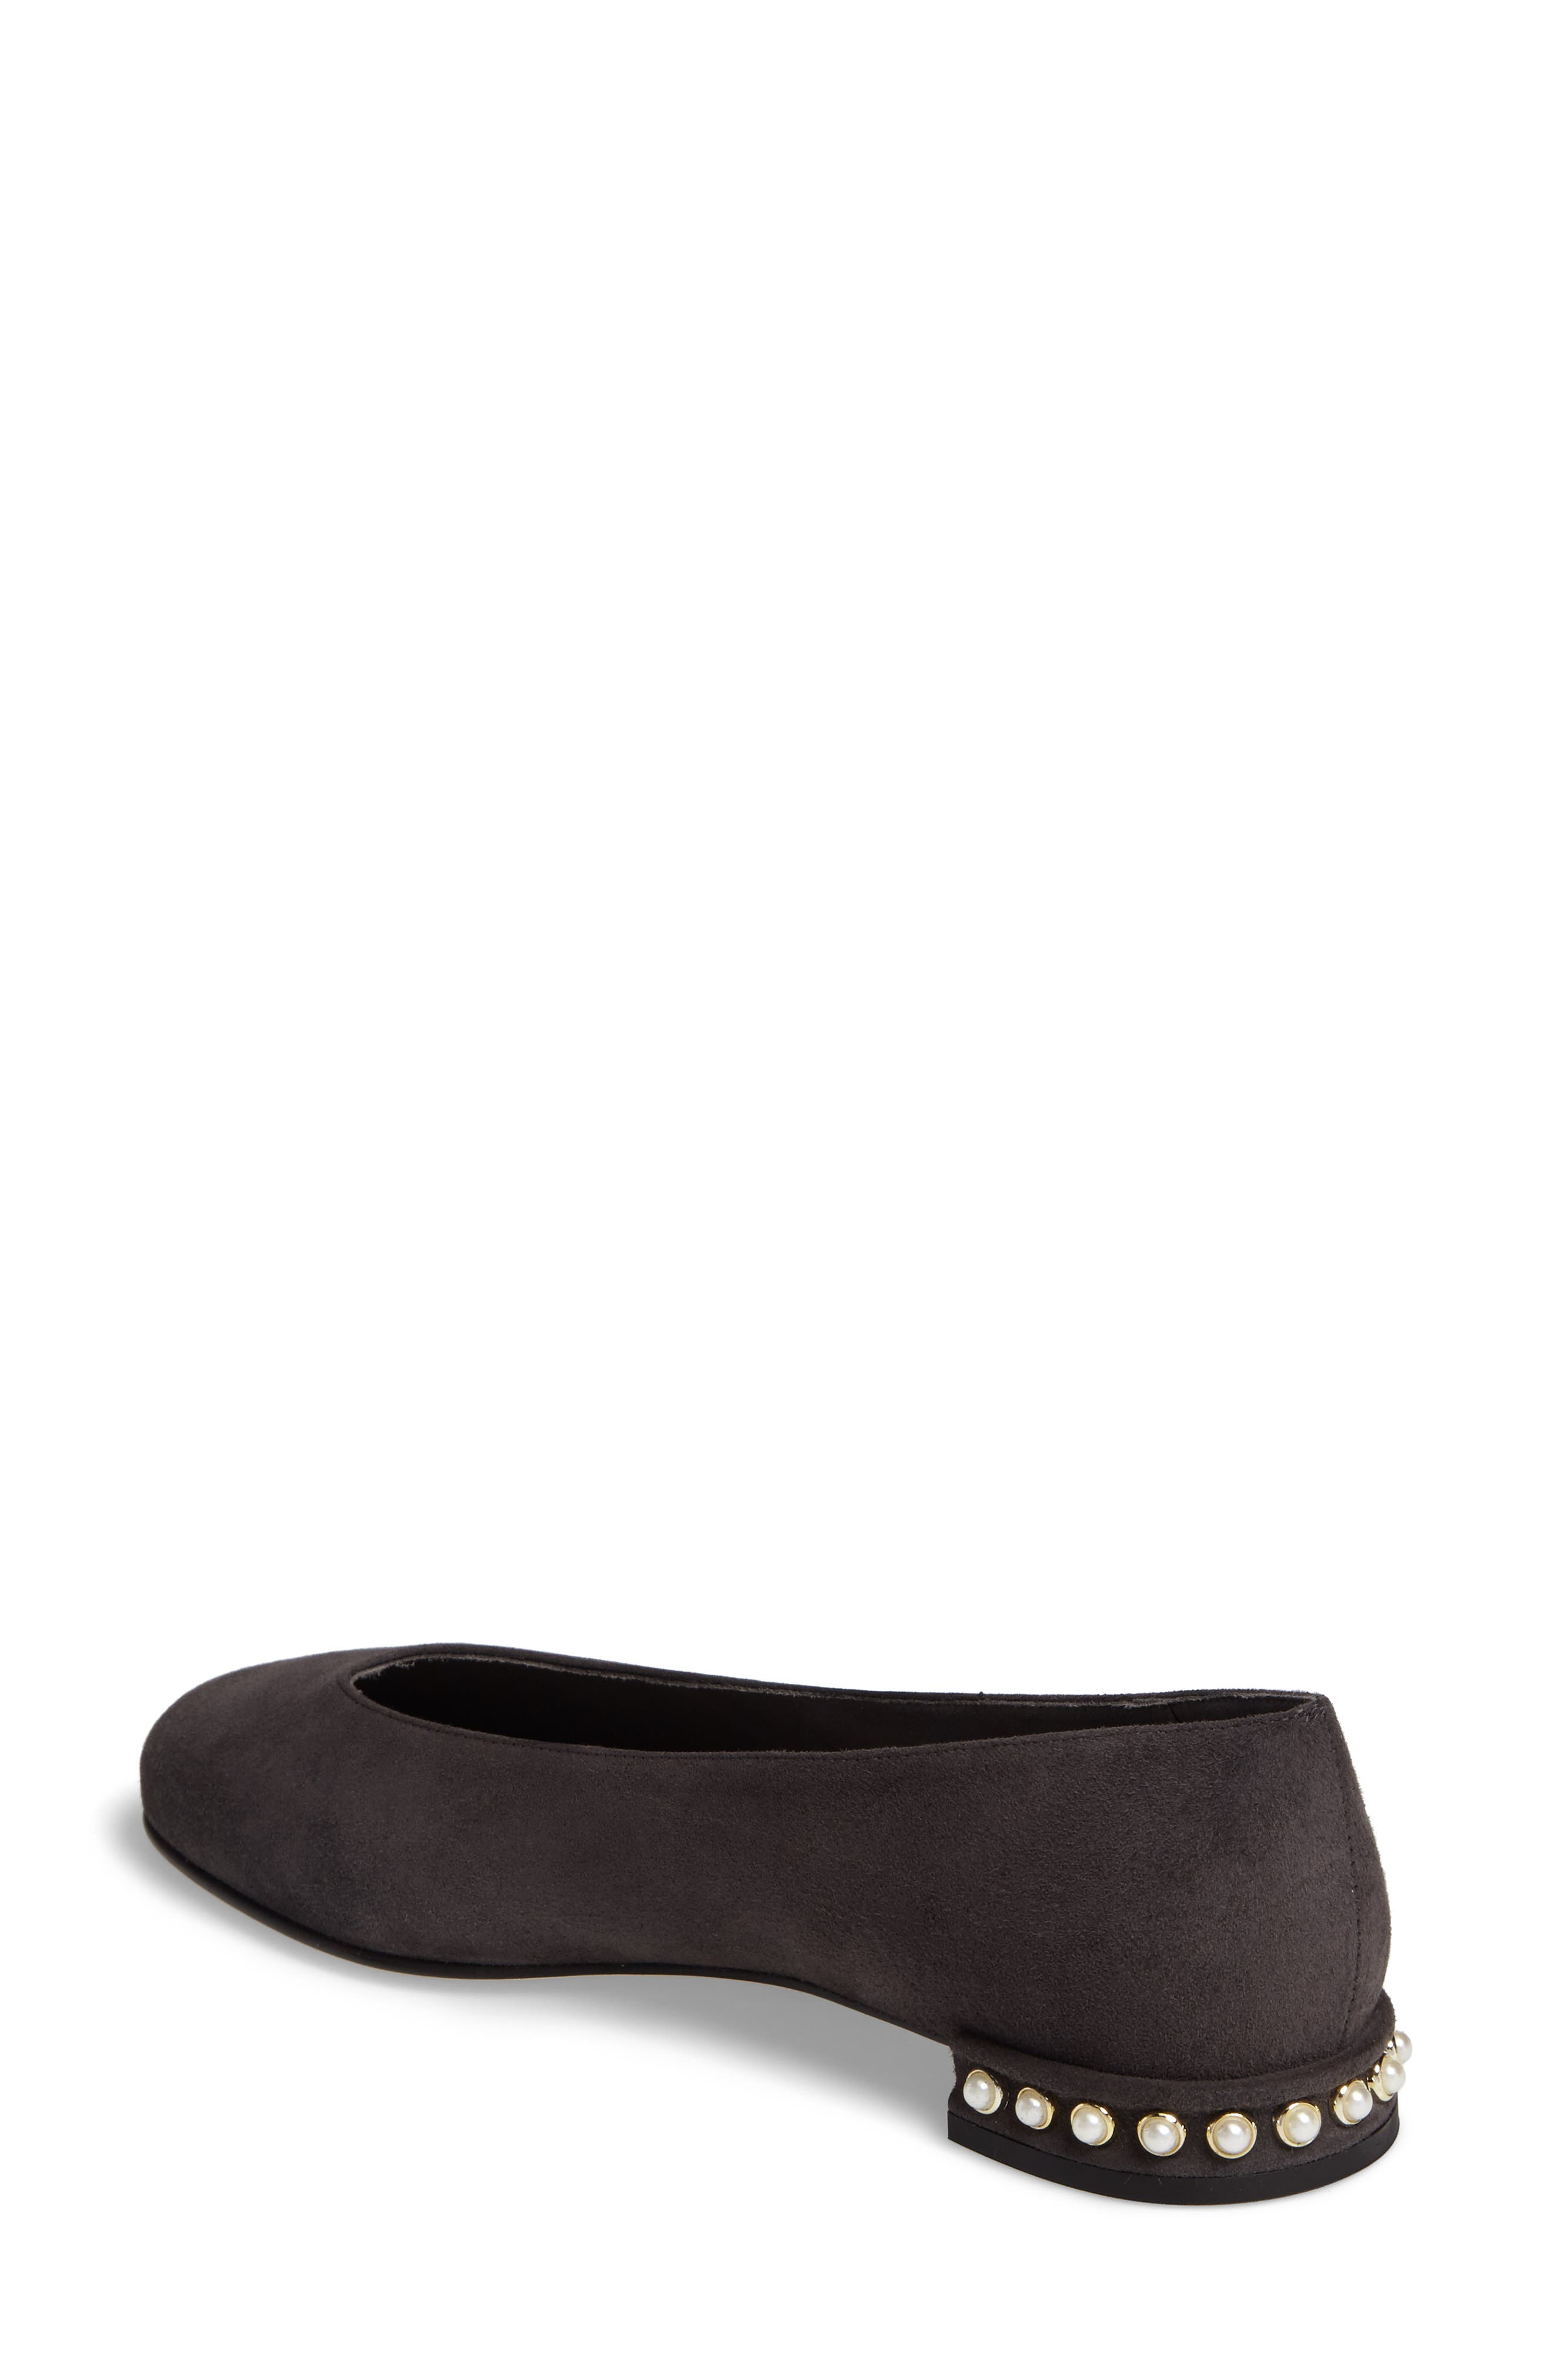 Chicpearl Ballet Flat,                             Alternate thumbnail 2, color,                             020